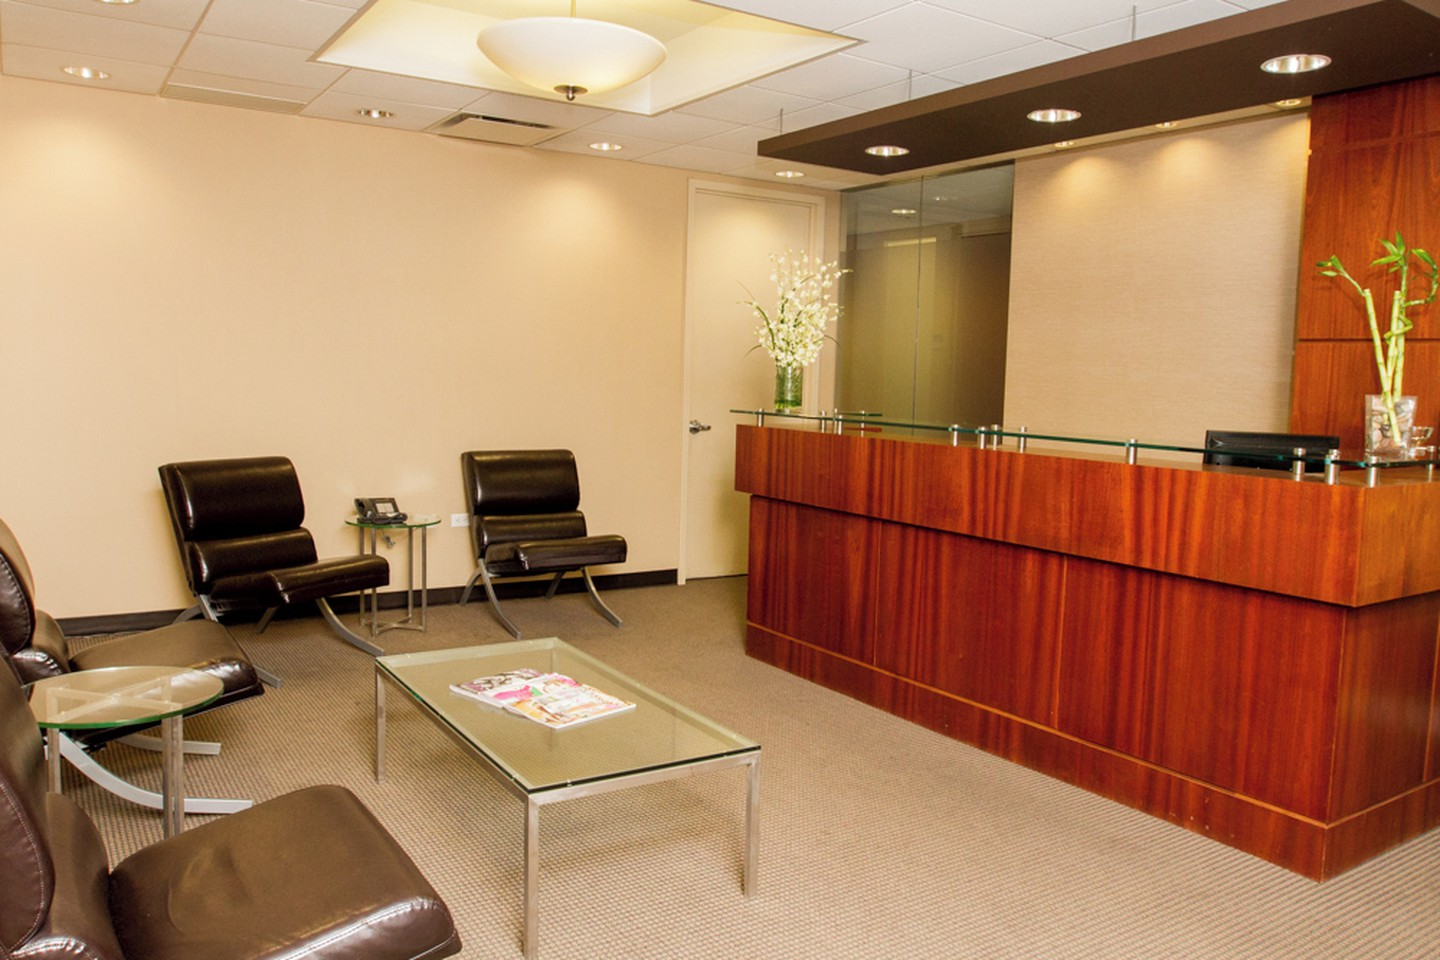 NYC training rooms Meetingraum Corporate Suites -10 Person Meeting Room Madison Ave image 2